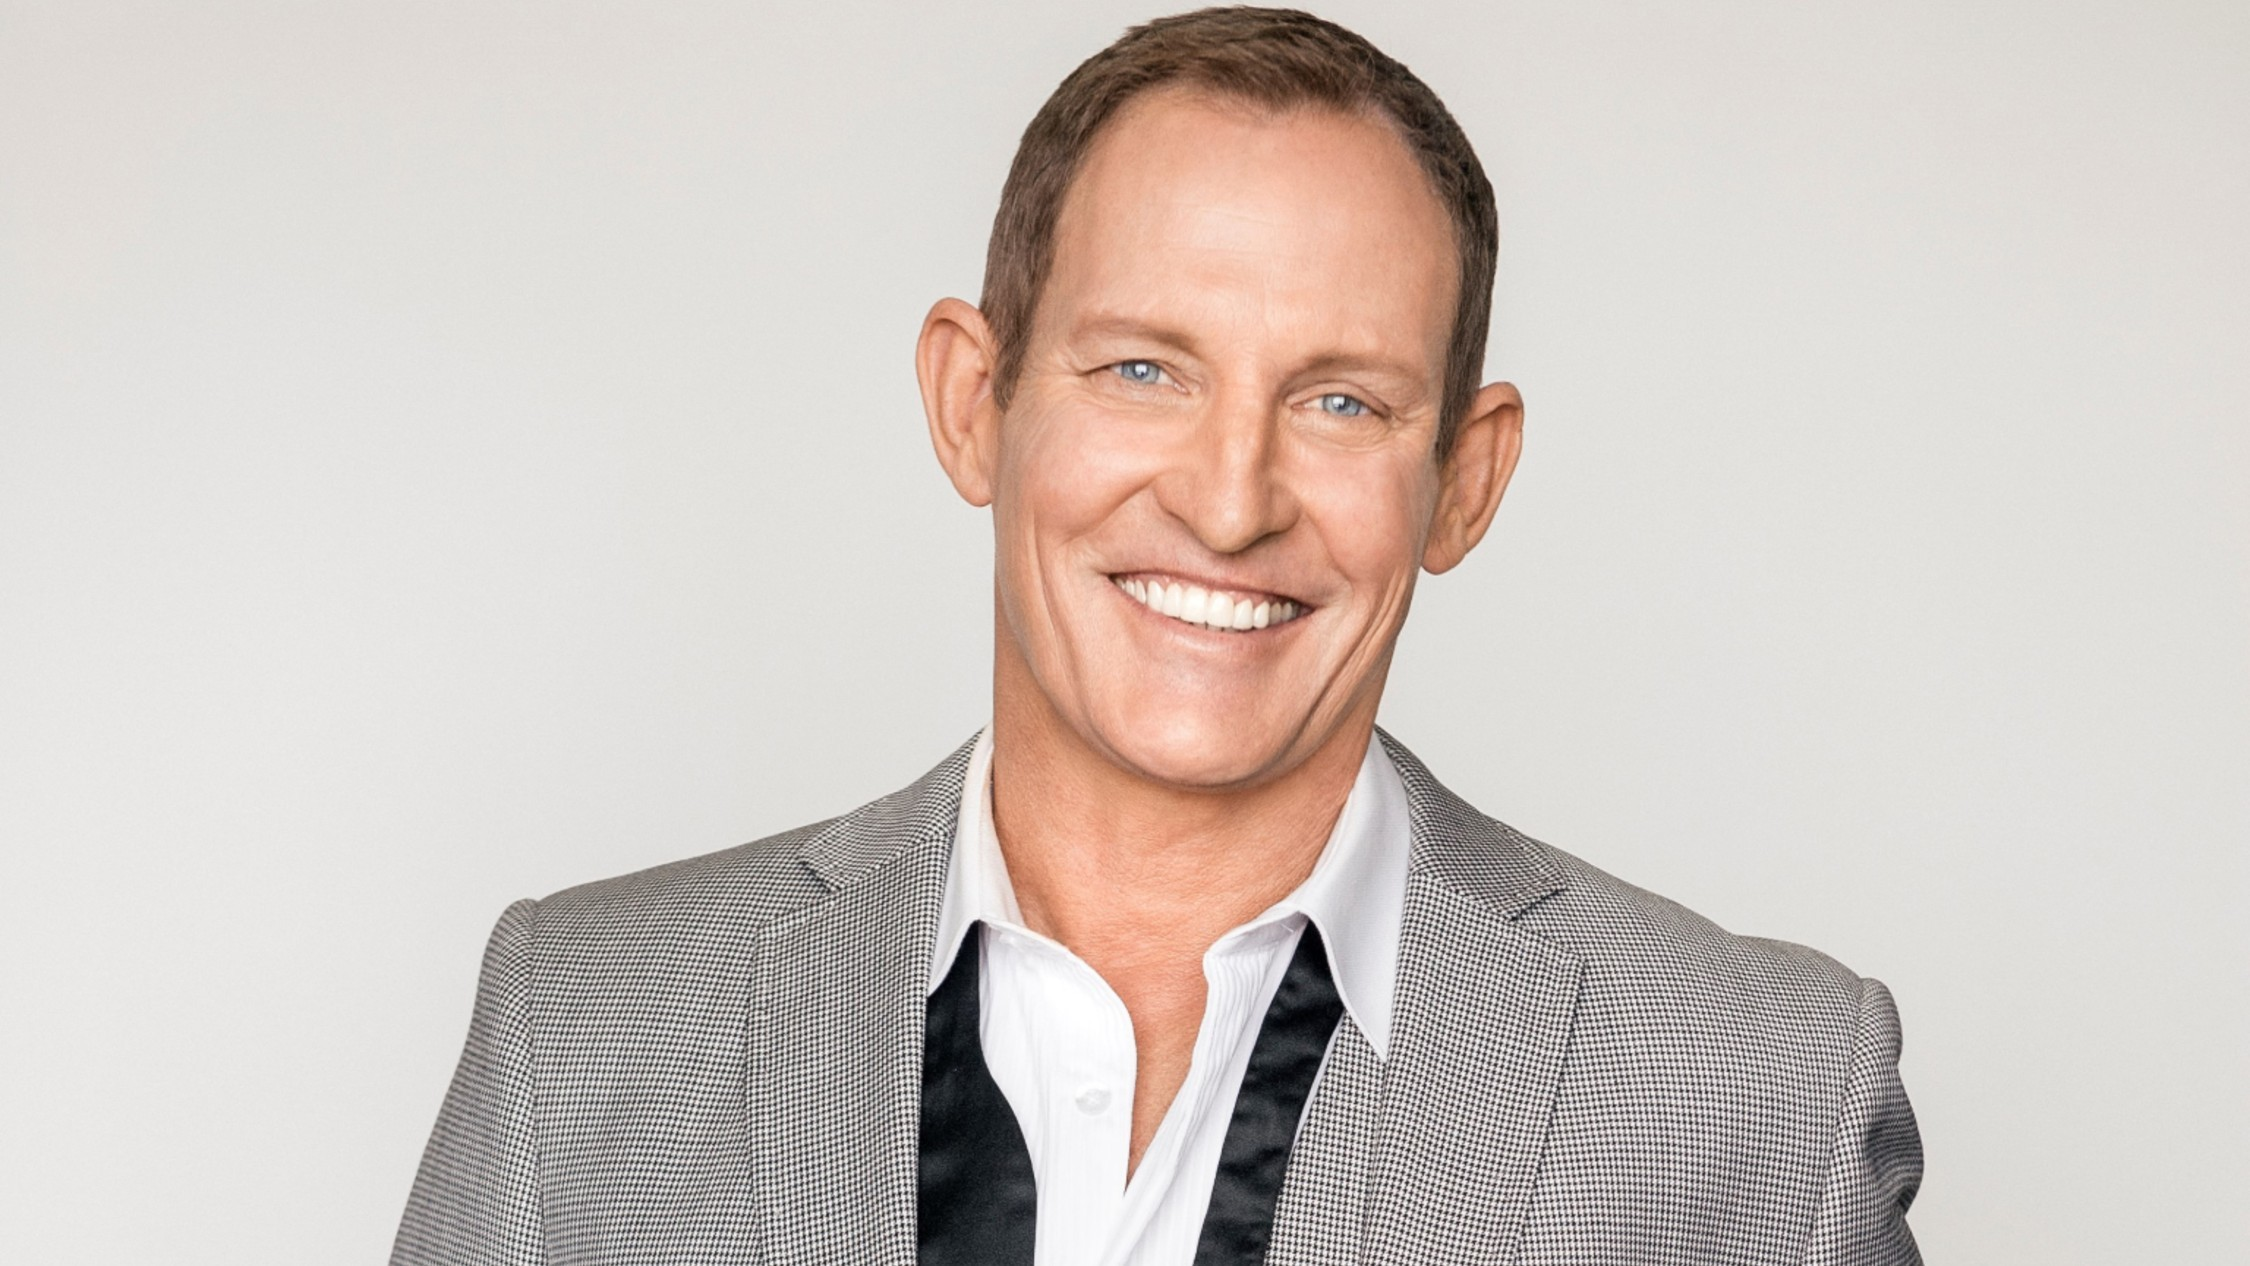 Musical star Todd McKenney is ready to showtune up your Sunday, with a little help from Bette Midler and Peter Allen